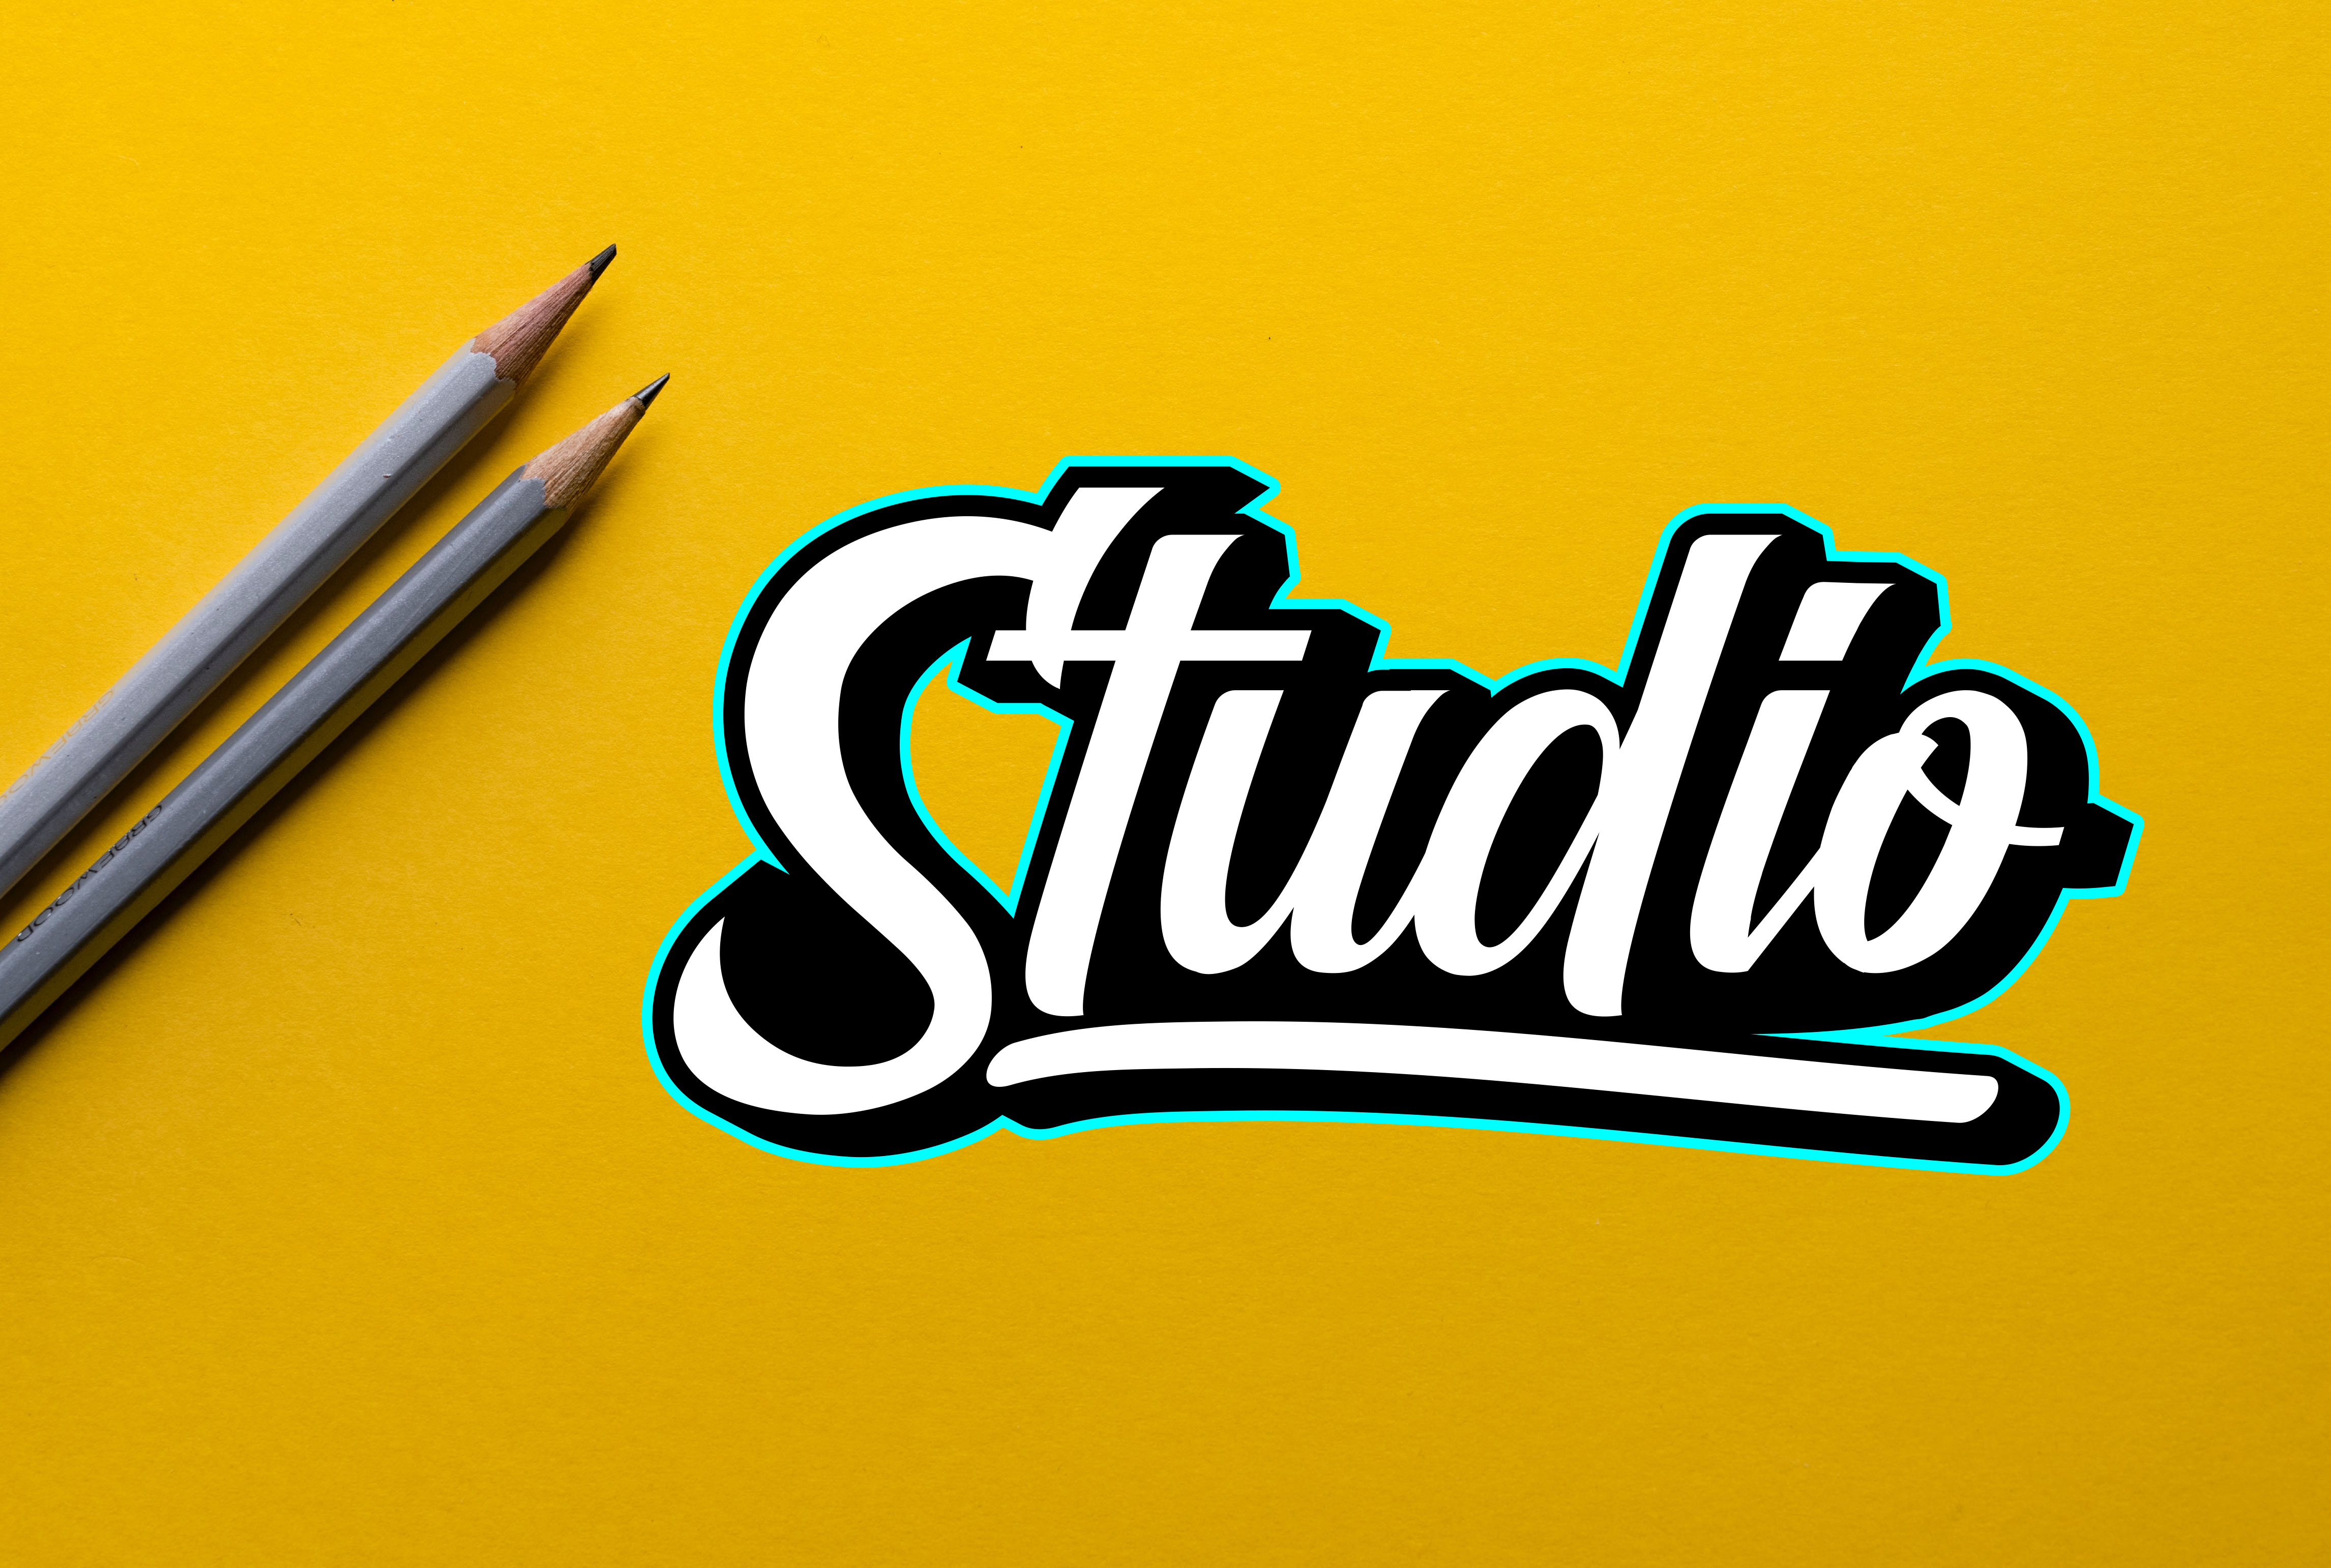 I will design handwritten hand lettering and hand drawn typography logo